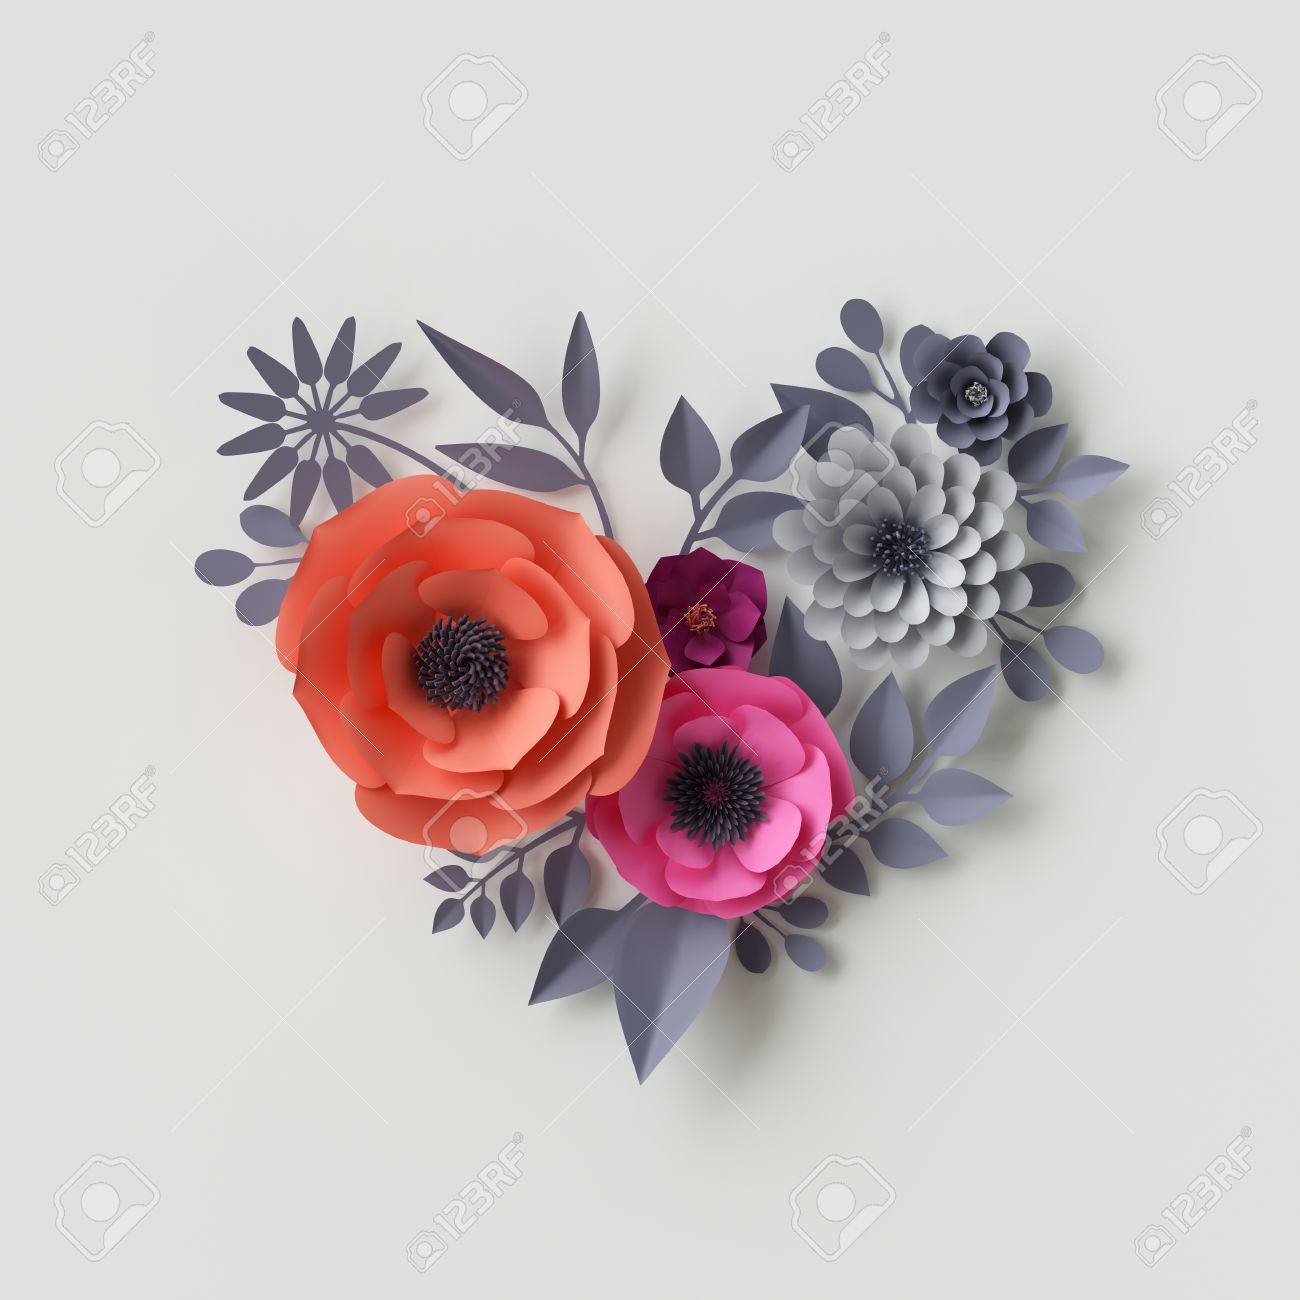 3d Illustration, Pink Red Paper Flowers, Floral Background, Bridal ...